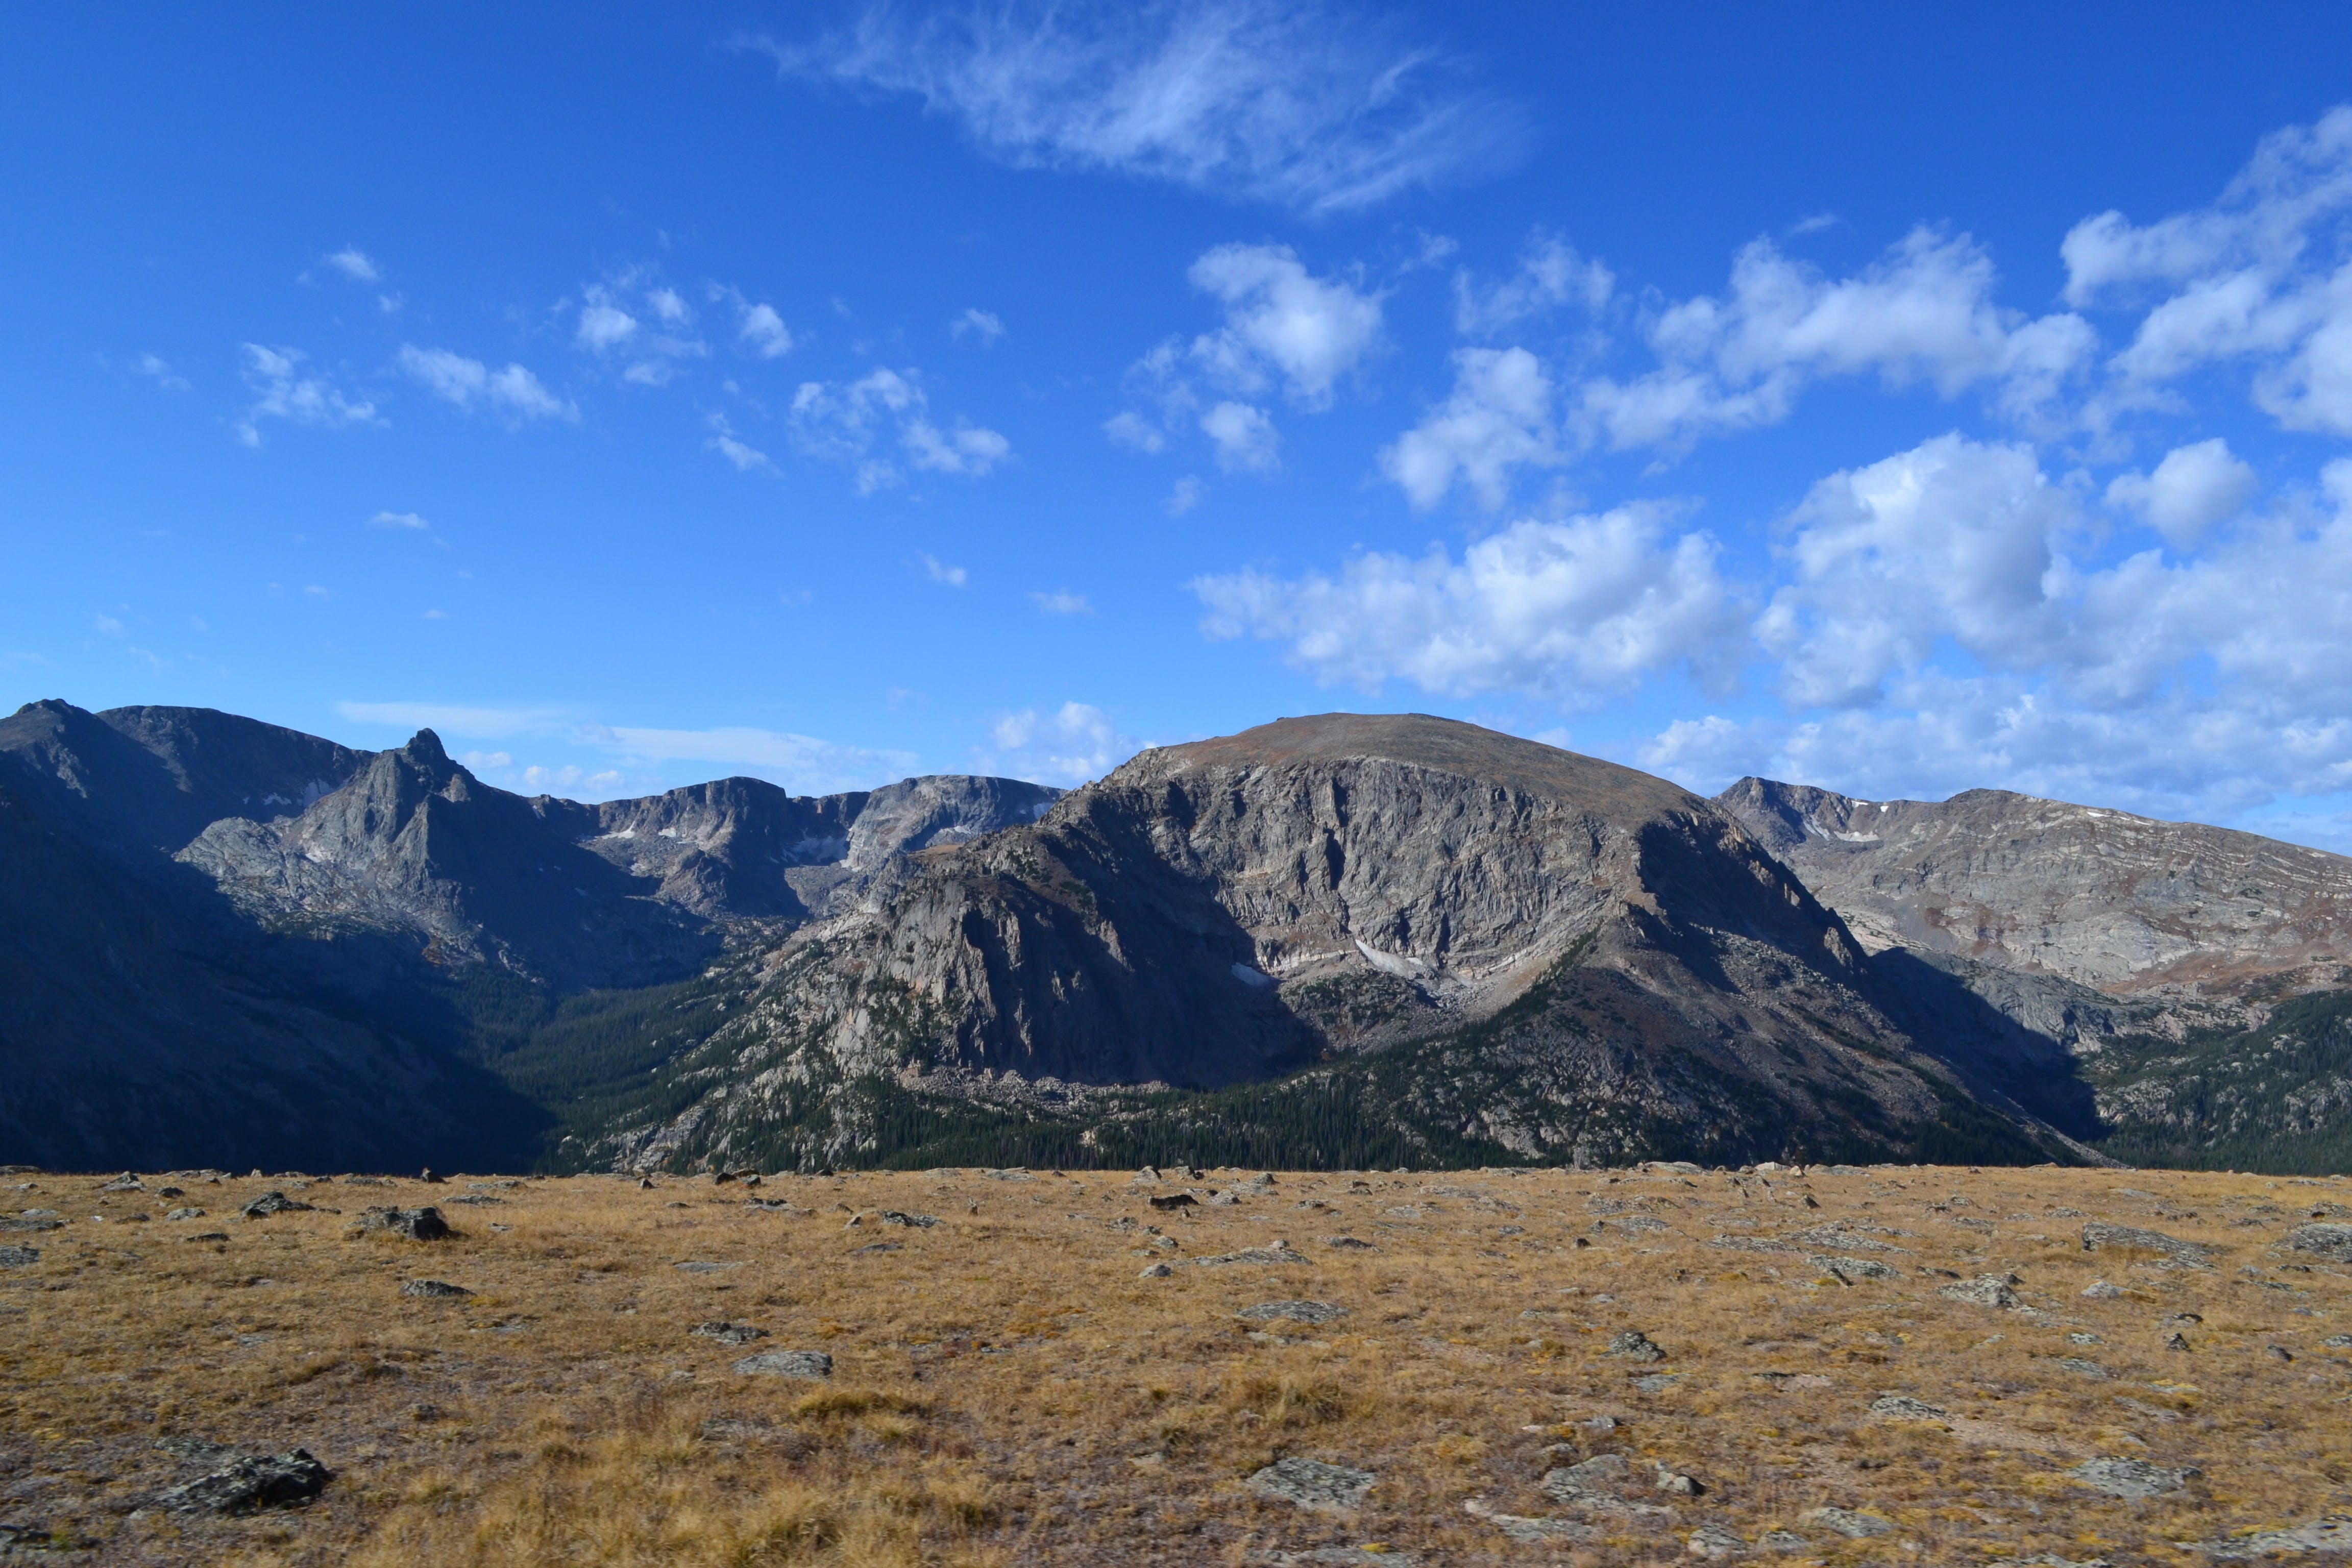 Free stock photo of mountains, field, blue sky, rocky mountains